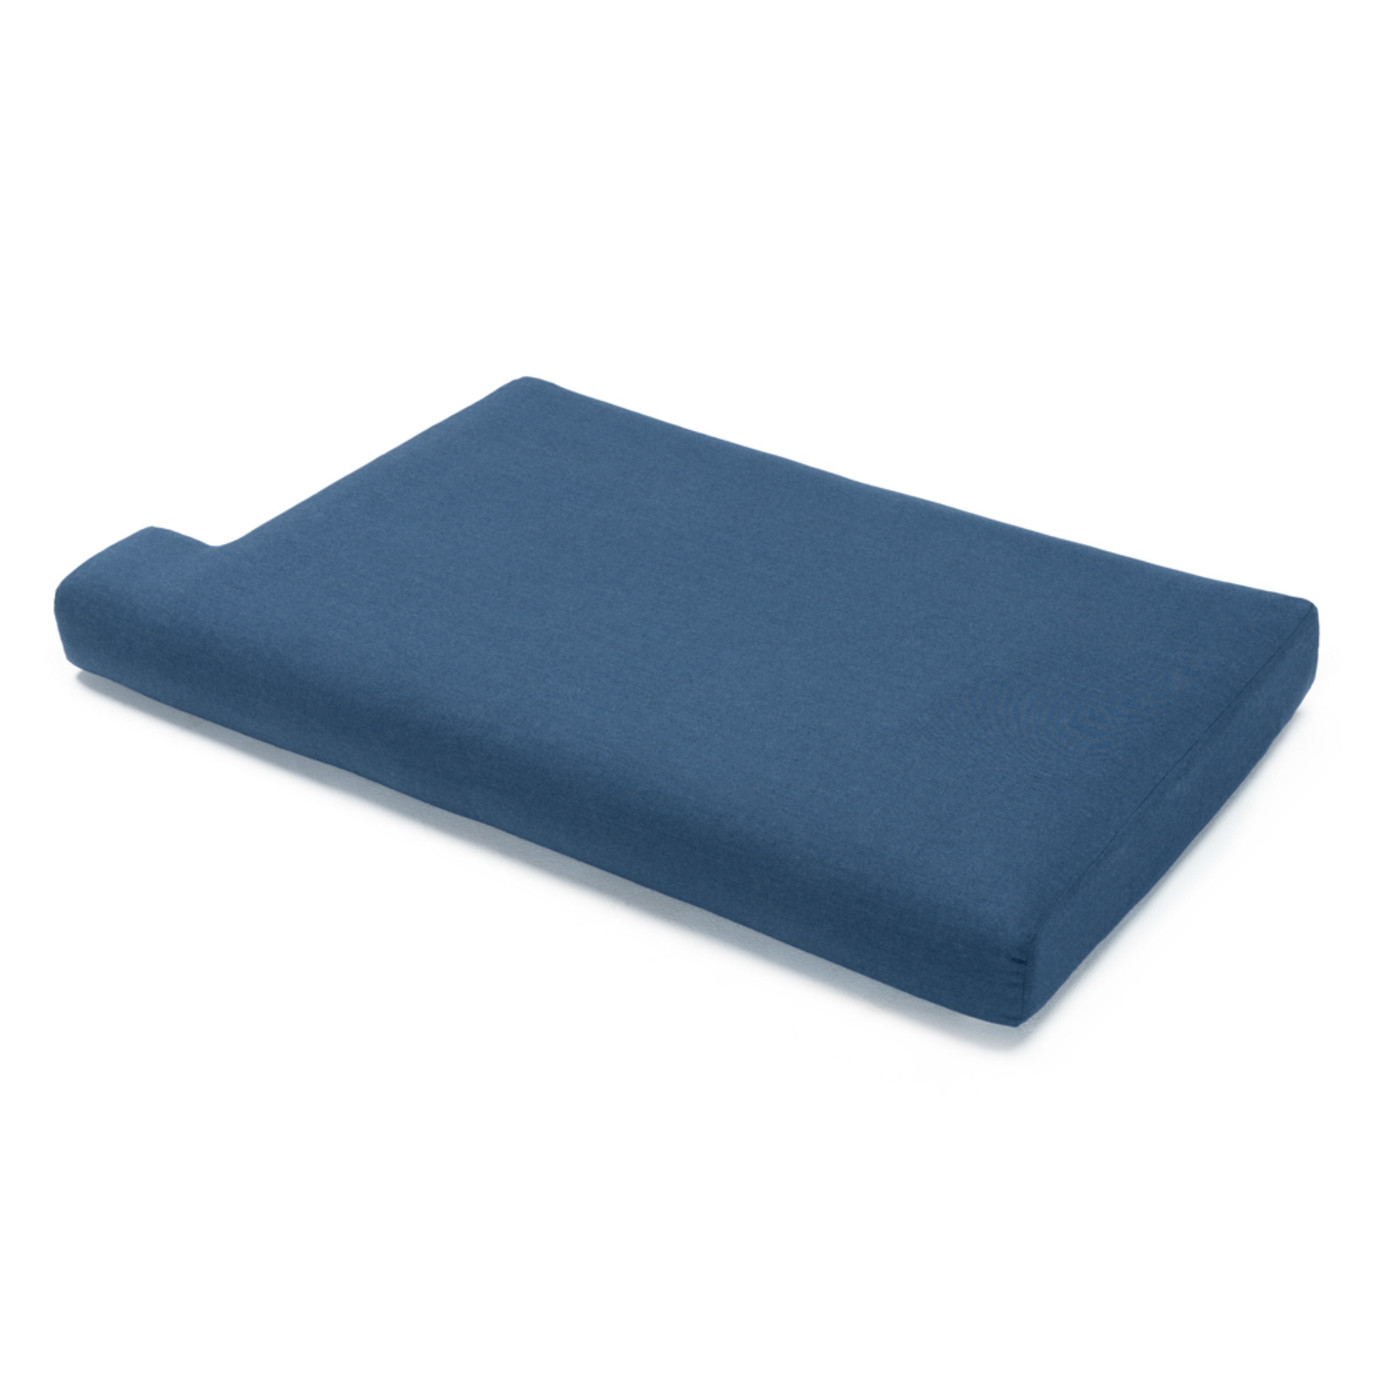 Portofino Comfort 96in Sofa Right Base Cushion - Laguna Blue